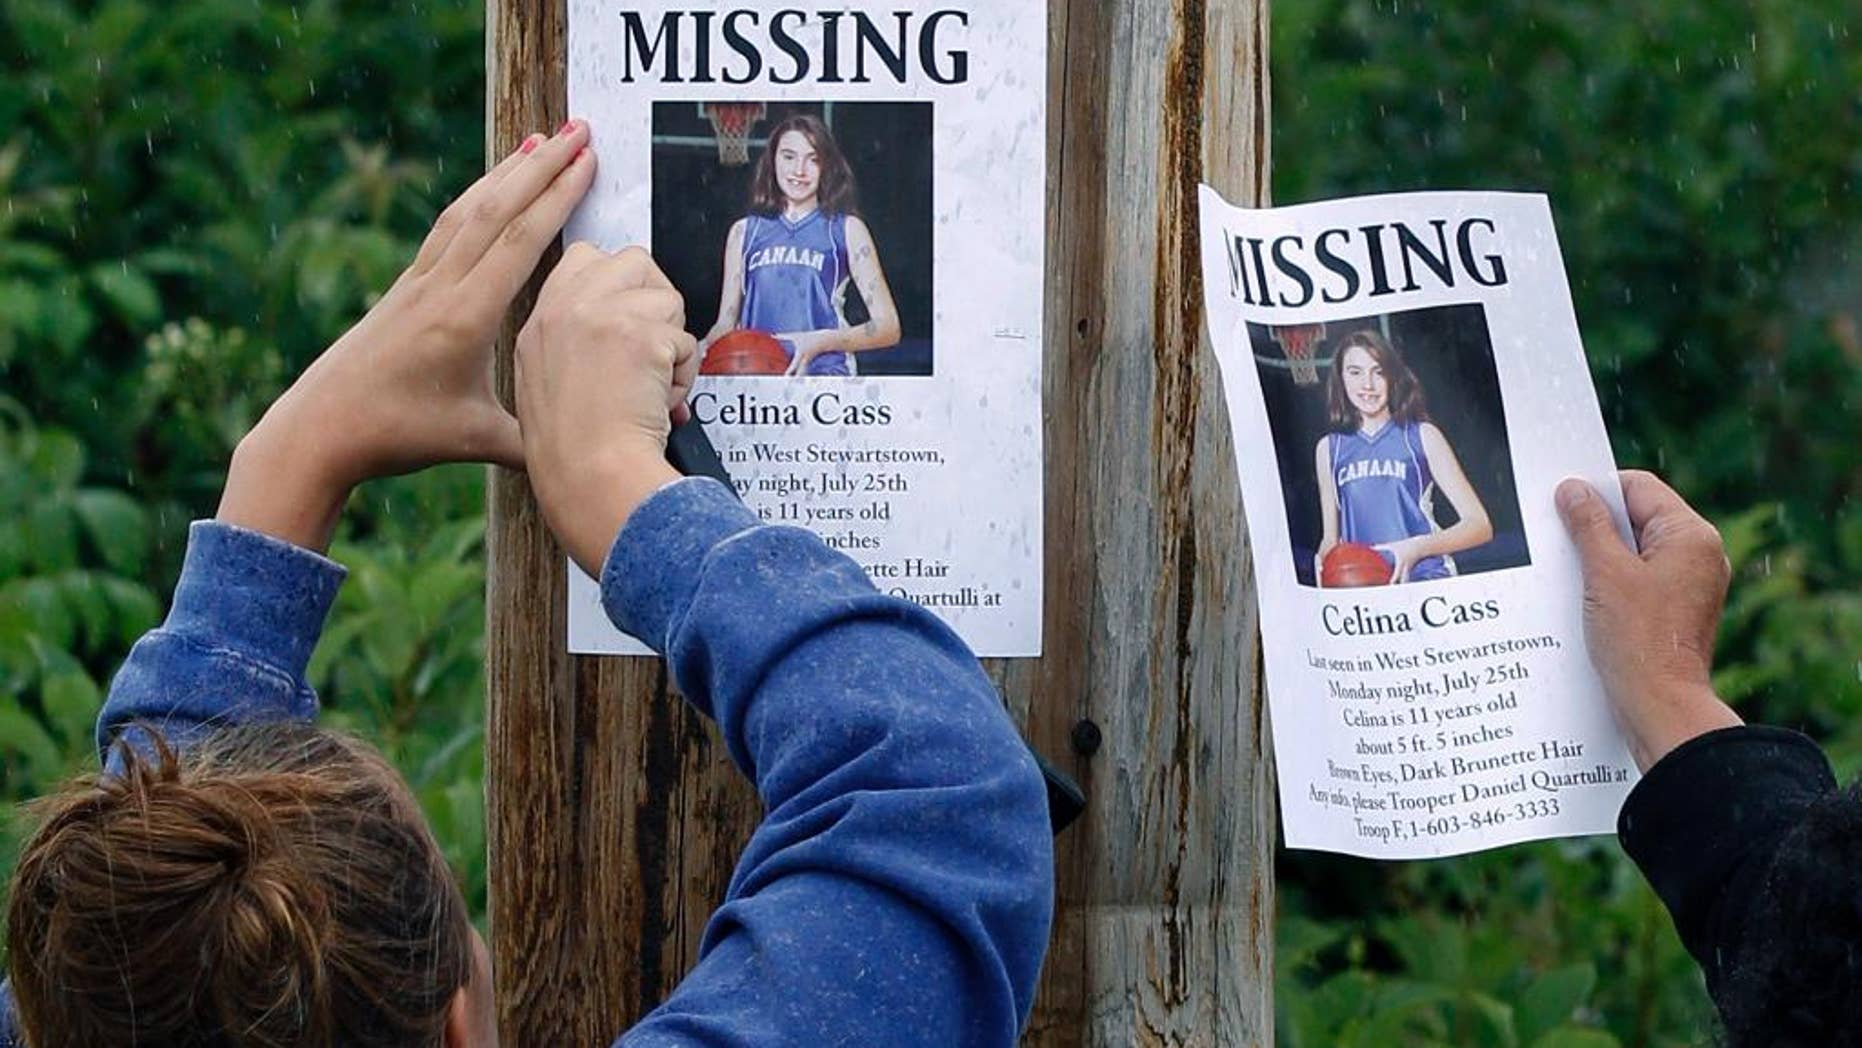 FILE - In this July 28, 2011 file photo, Kaylin Pettit, of Stewartstown, N.H., left, and Lori McKearney, of Lancaster, N.H. tack missing posters for Celina Cass to a utility pole in Colebrook, N.H.  A week after Cass went missing from her family's West Stewartstown apartment on July 25, 2011, her body was found near a dam in the Connecticut River. Four years later, no one has been charged with her death, which investigators have called a homicide. (AP Photo/Charles Krupa, File)